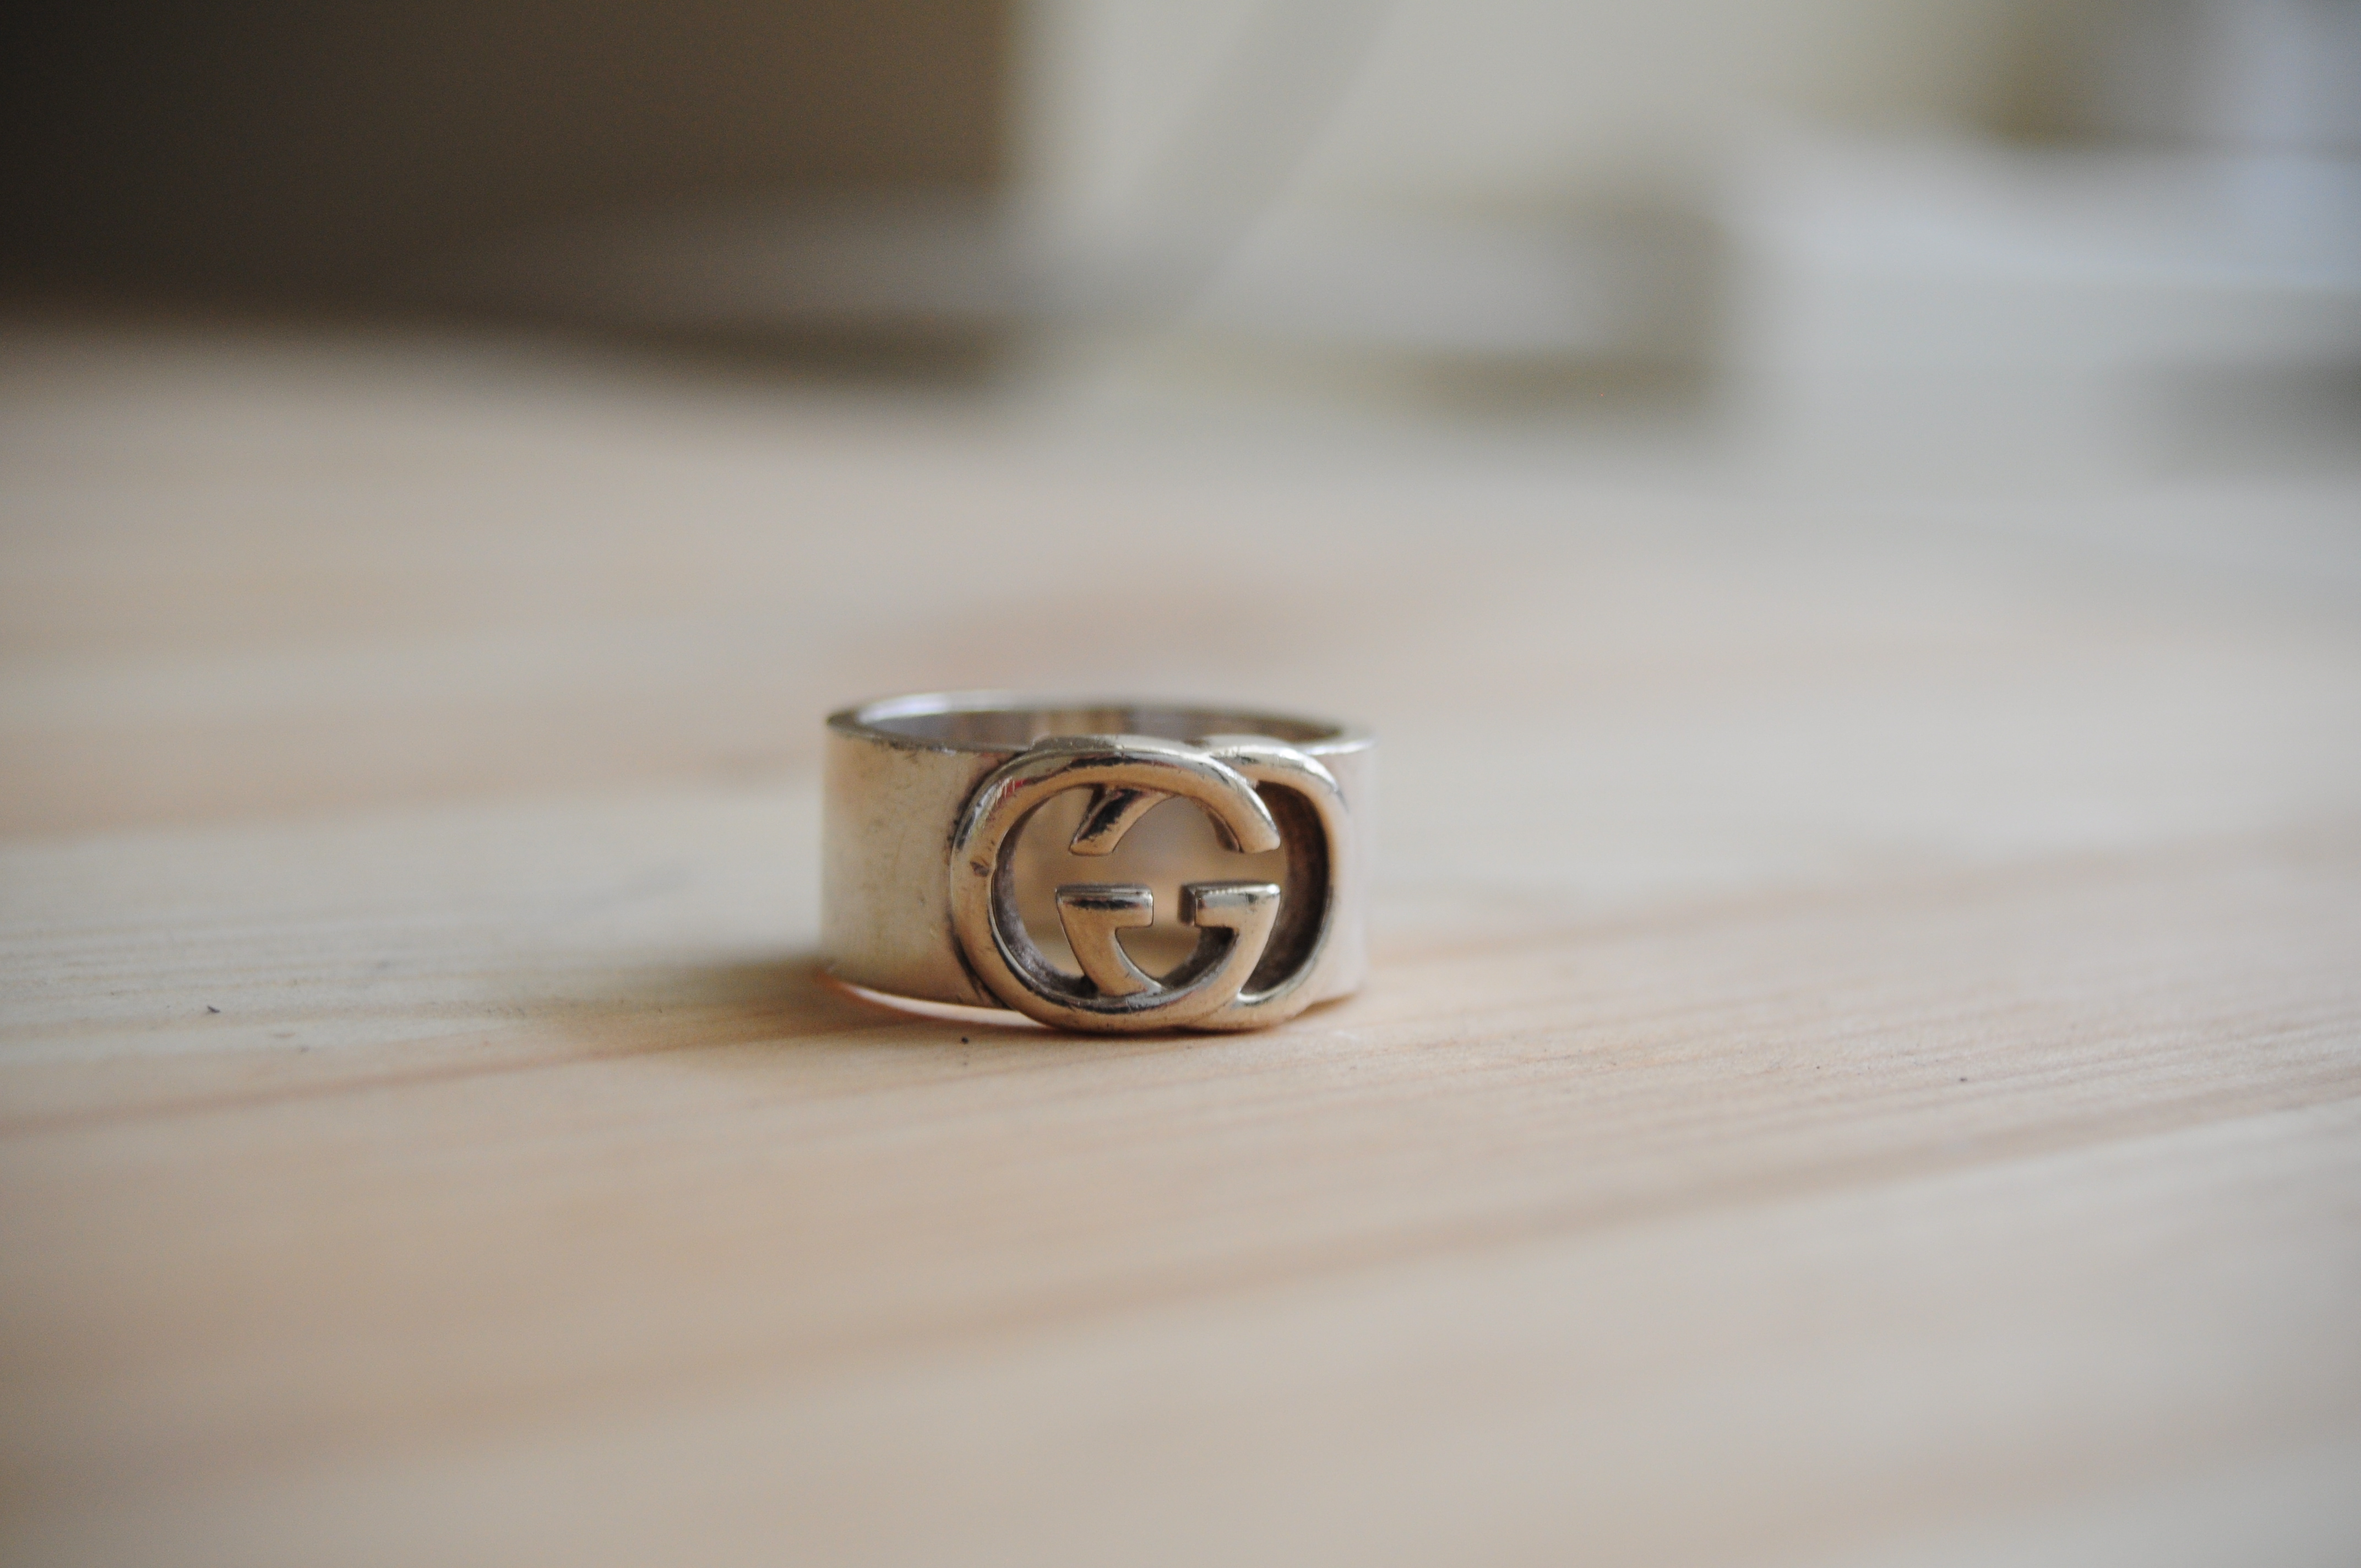 89d07d723 Gucci Silver Interlocking Double G Ring Size 8.5 *final Price ...